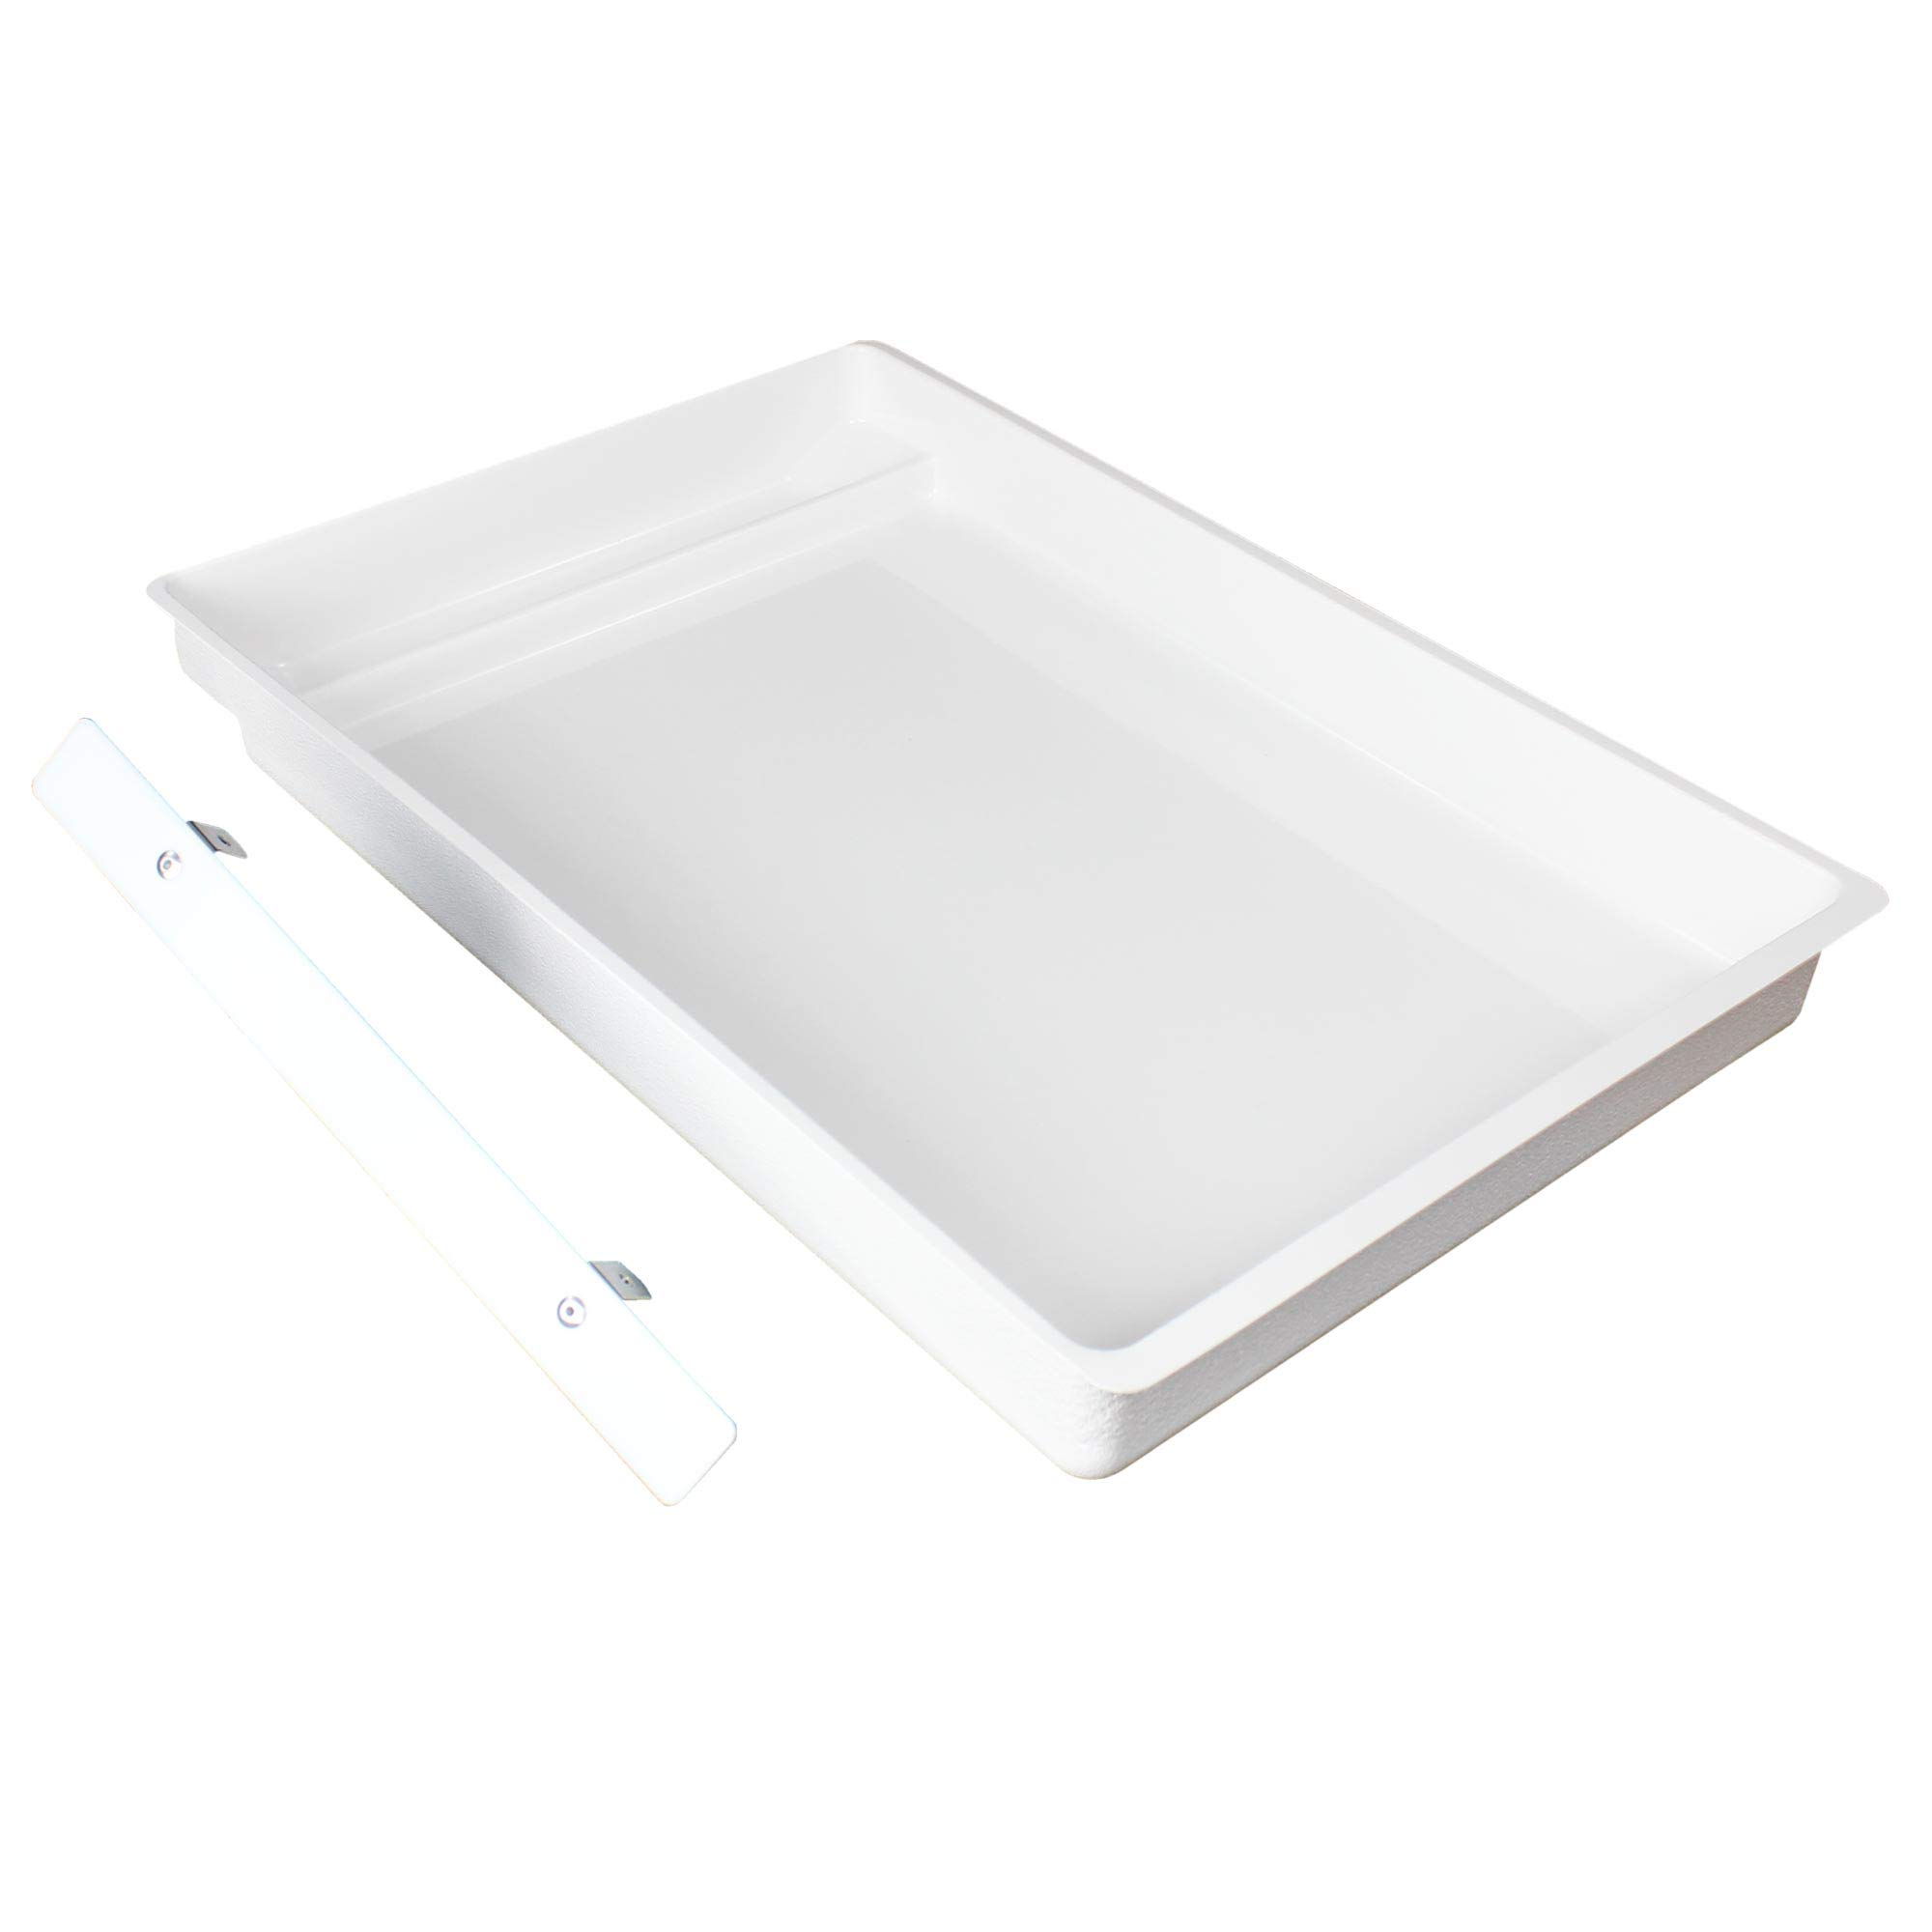 LitterWorks Permanent Scoopfree Compatible Litter Tray. Heavy Duty, Seamless Plastic Design Replaces Disposable Tray Refills, Pays for Itself in a Few Months.